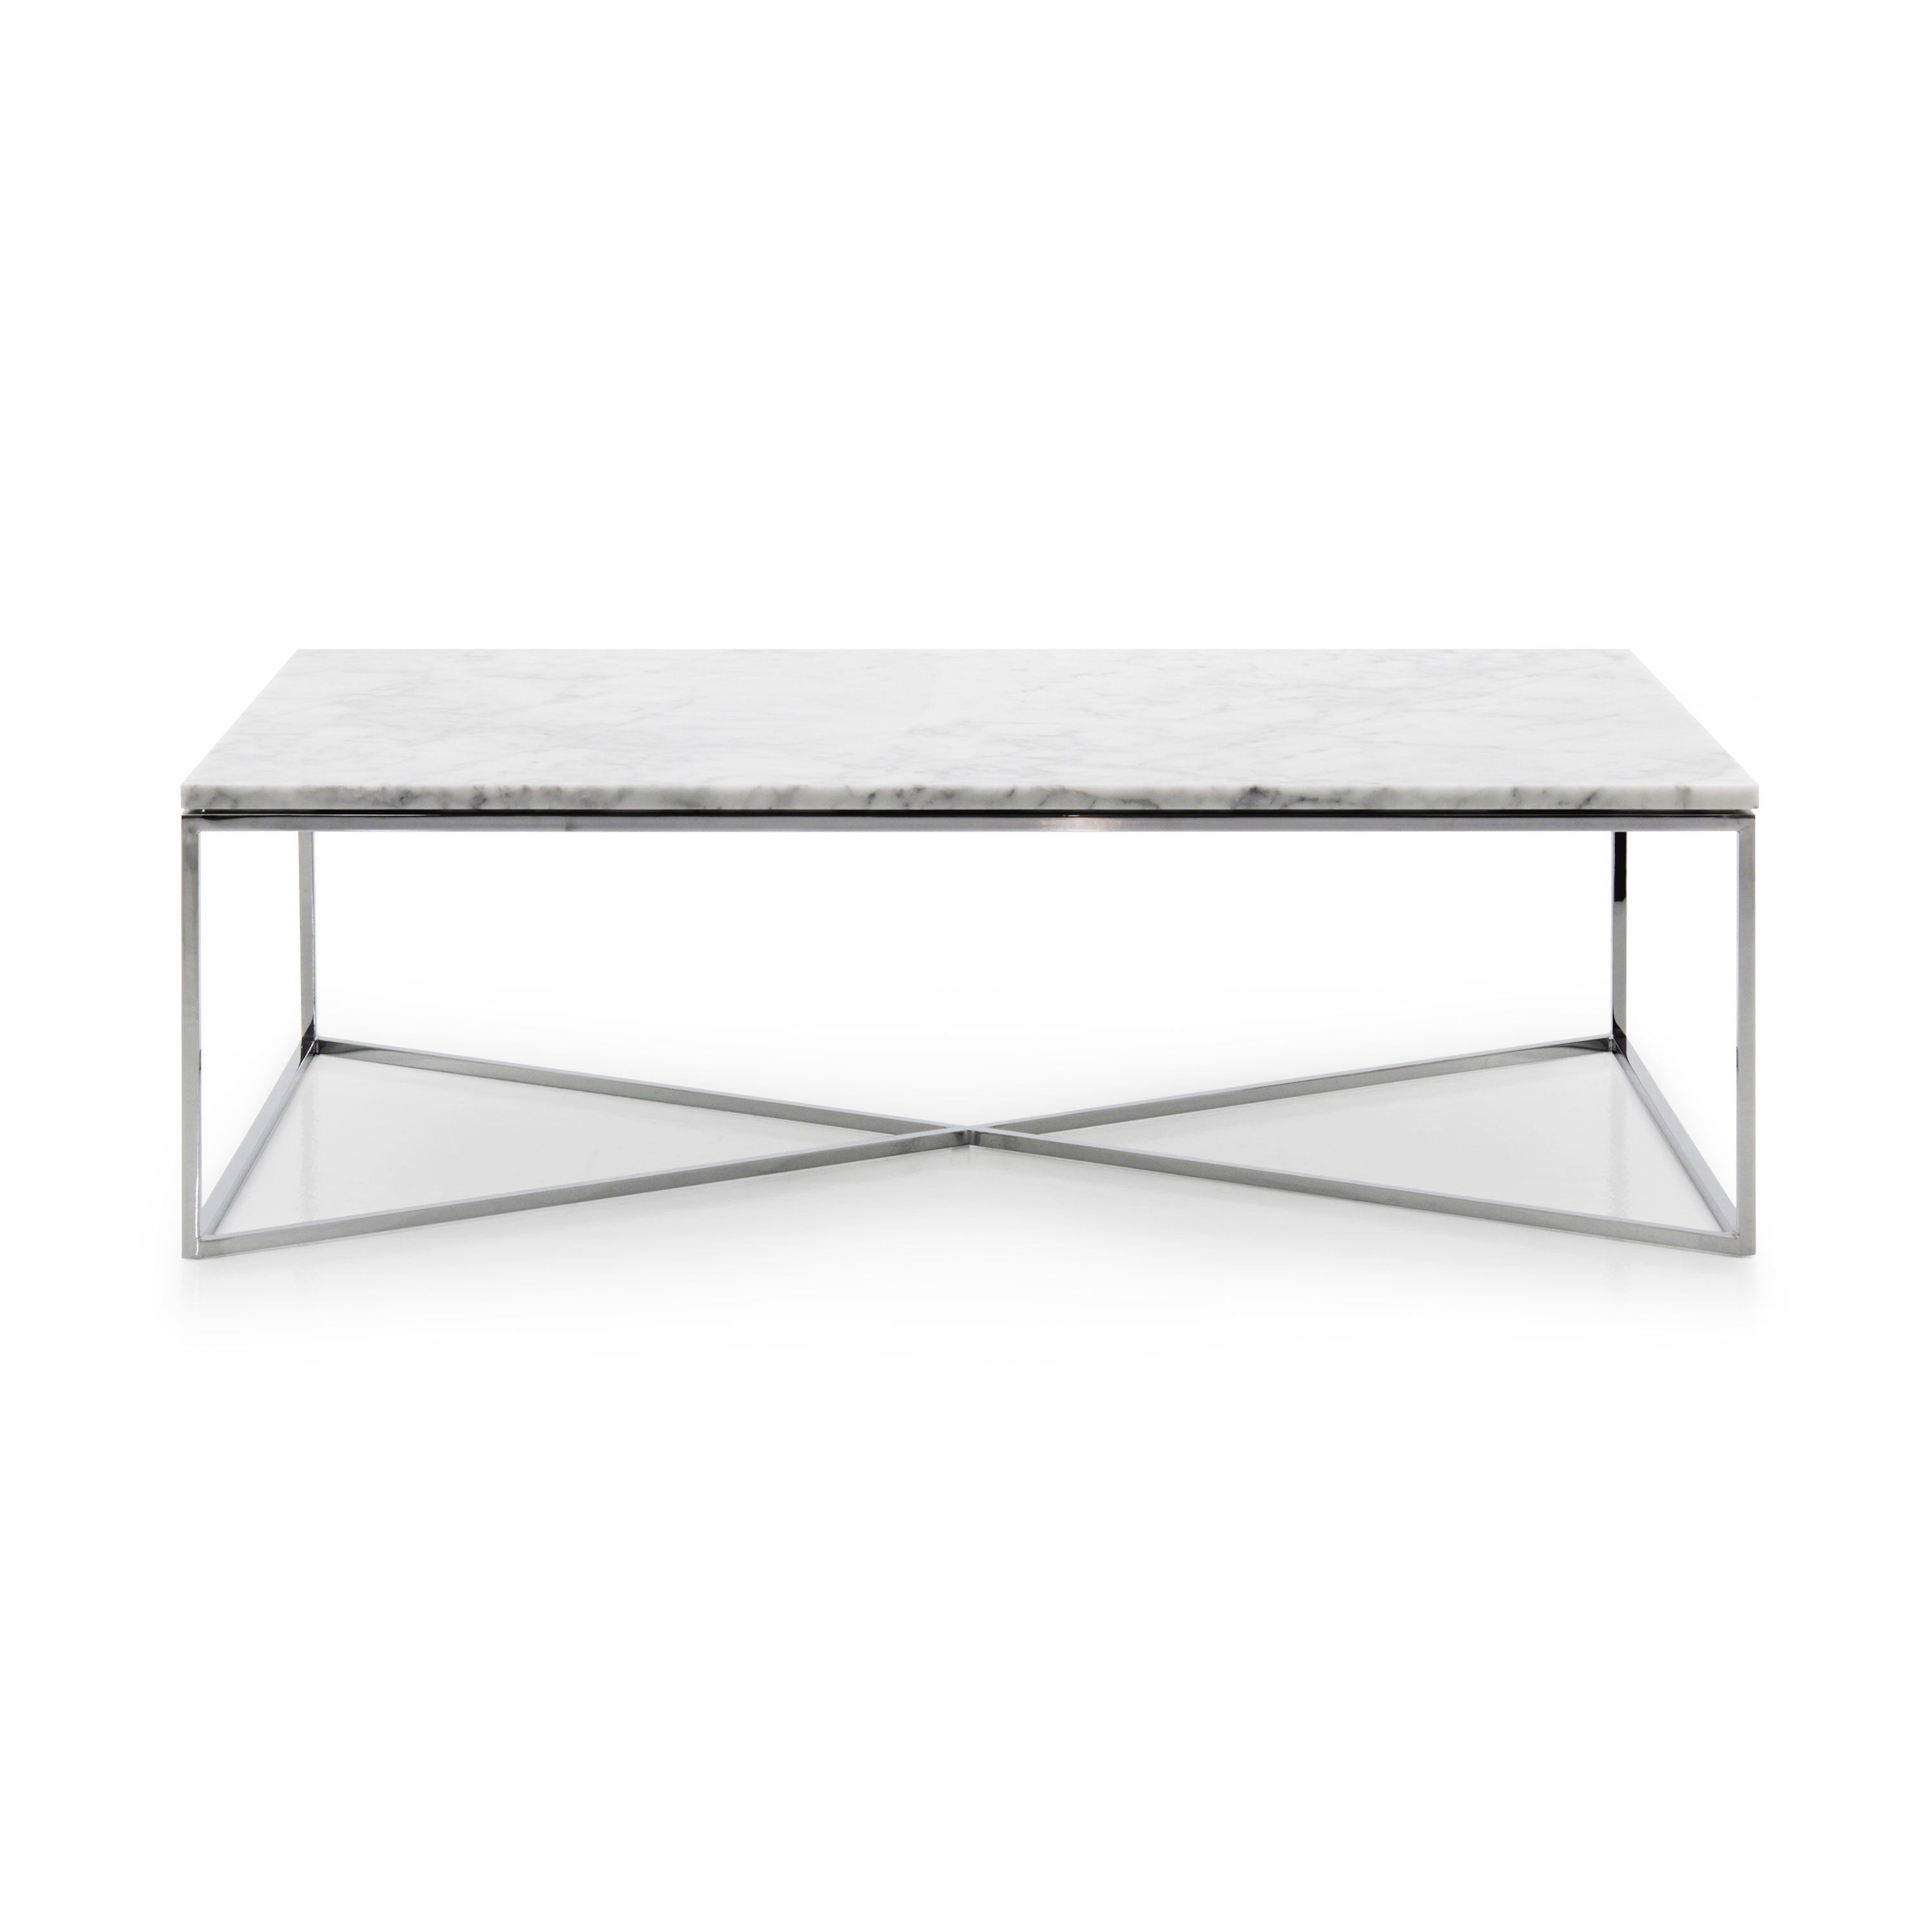 Amazing Modern Style Marble Top Coffee Table Klepsidra Sevensedie Caraccident5 Cool Chair Designs And Ideas Caraccident5Info